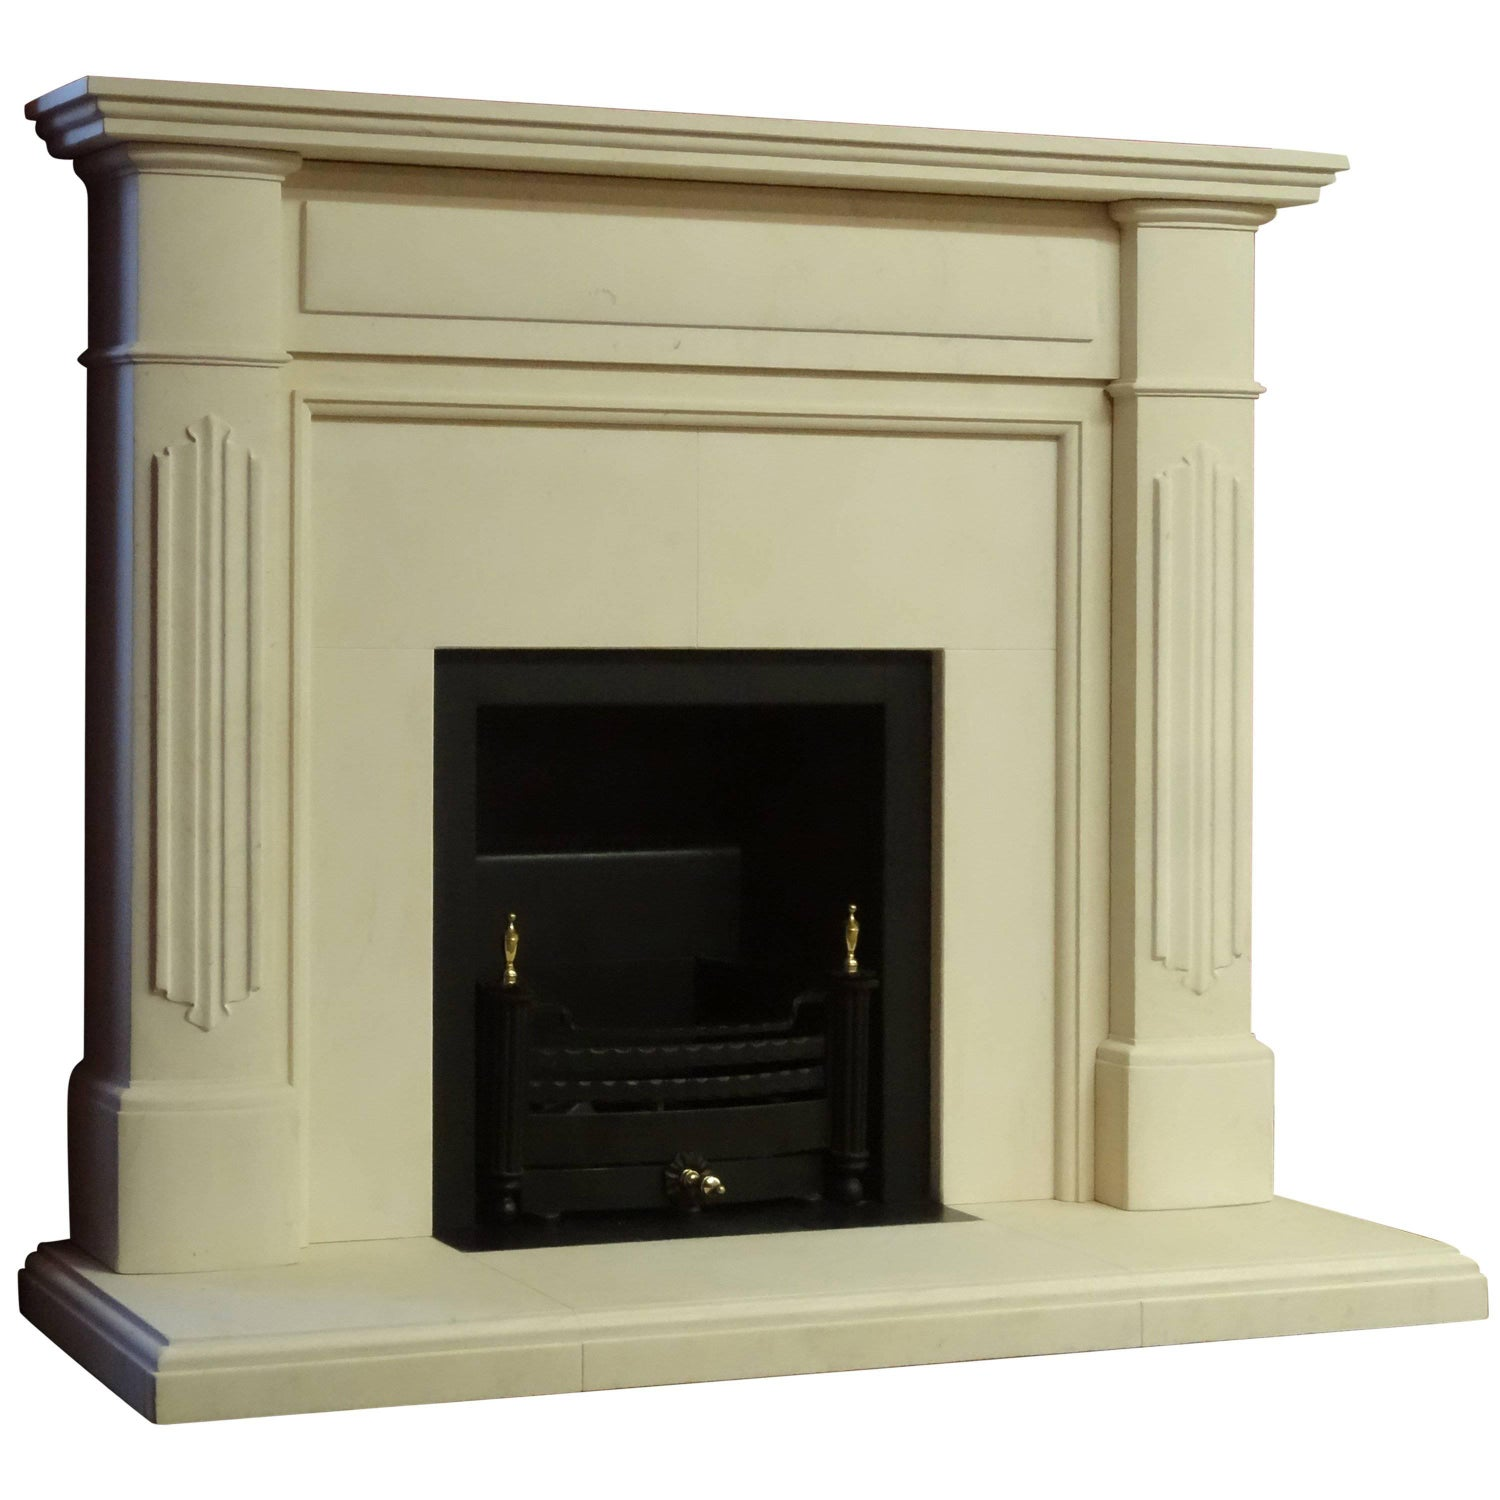 21st century irish carved limestone fireplace metal trim and fire